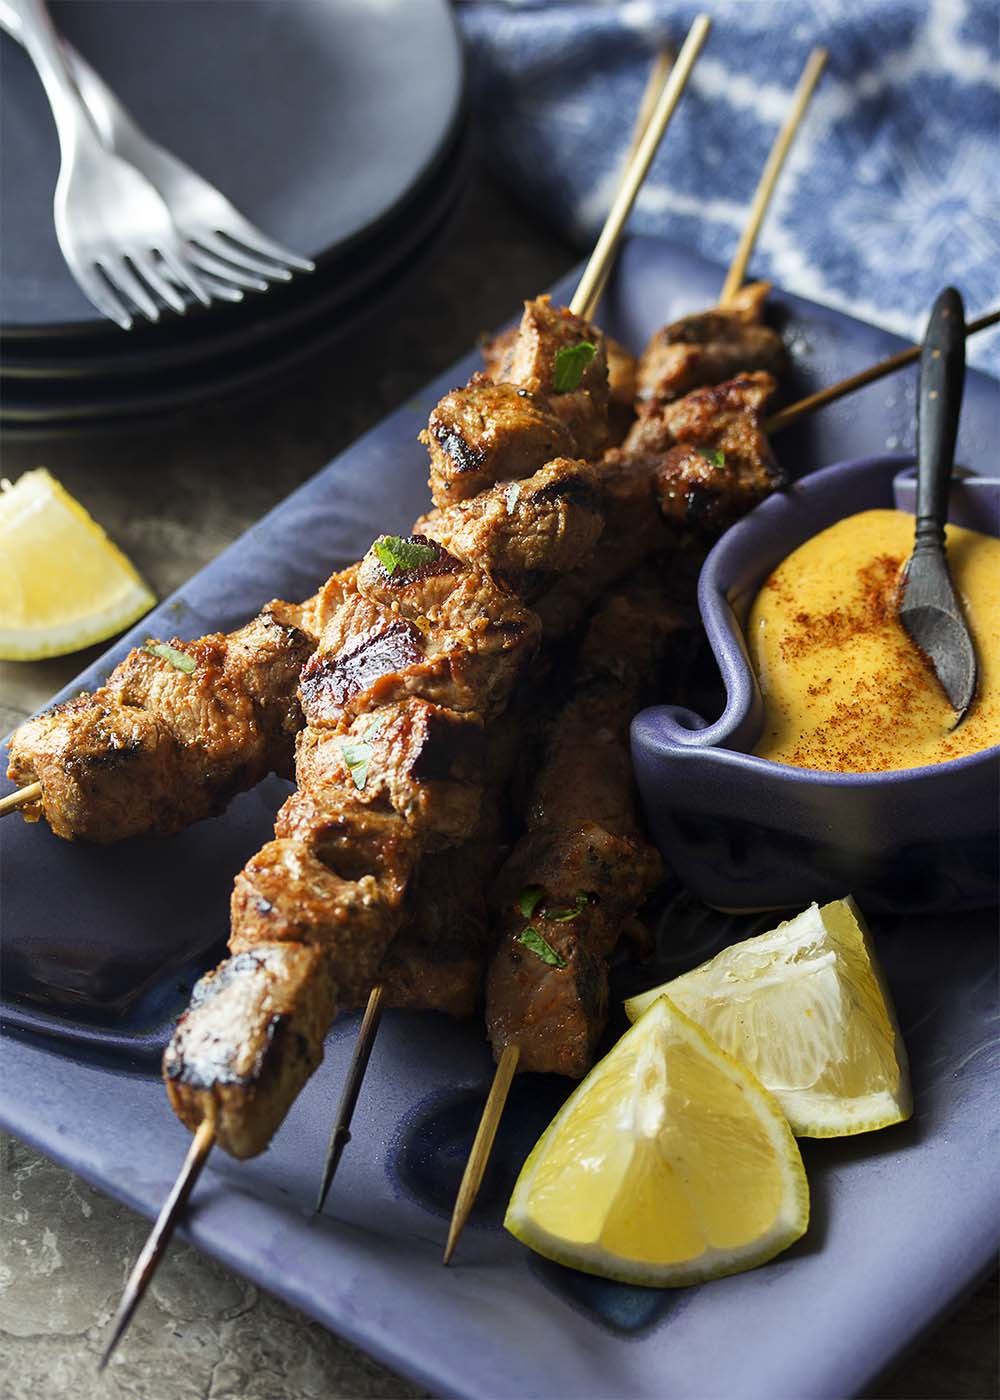 Long skewers of pinchos morunos on a blue serving platter with wedges of lemon and a bowl of aioli.